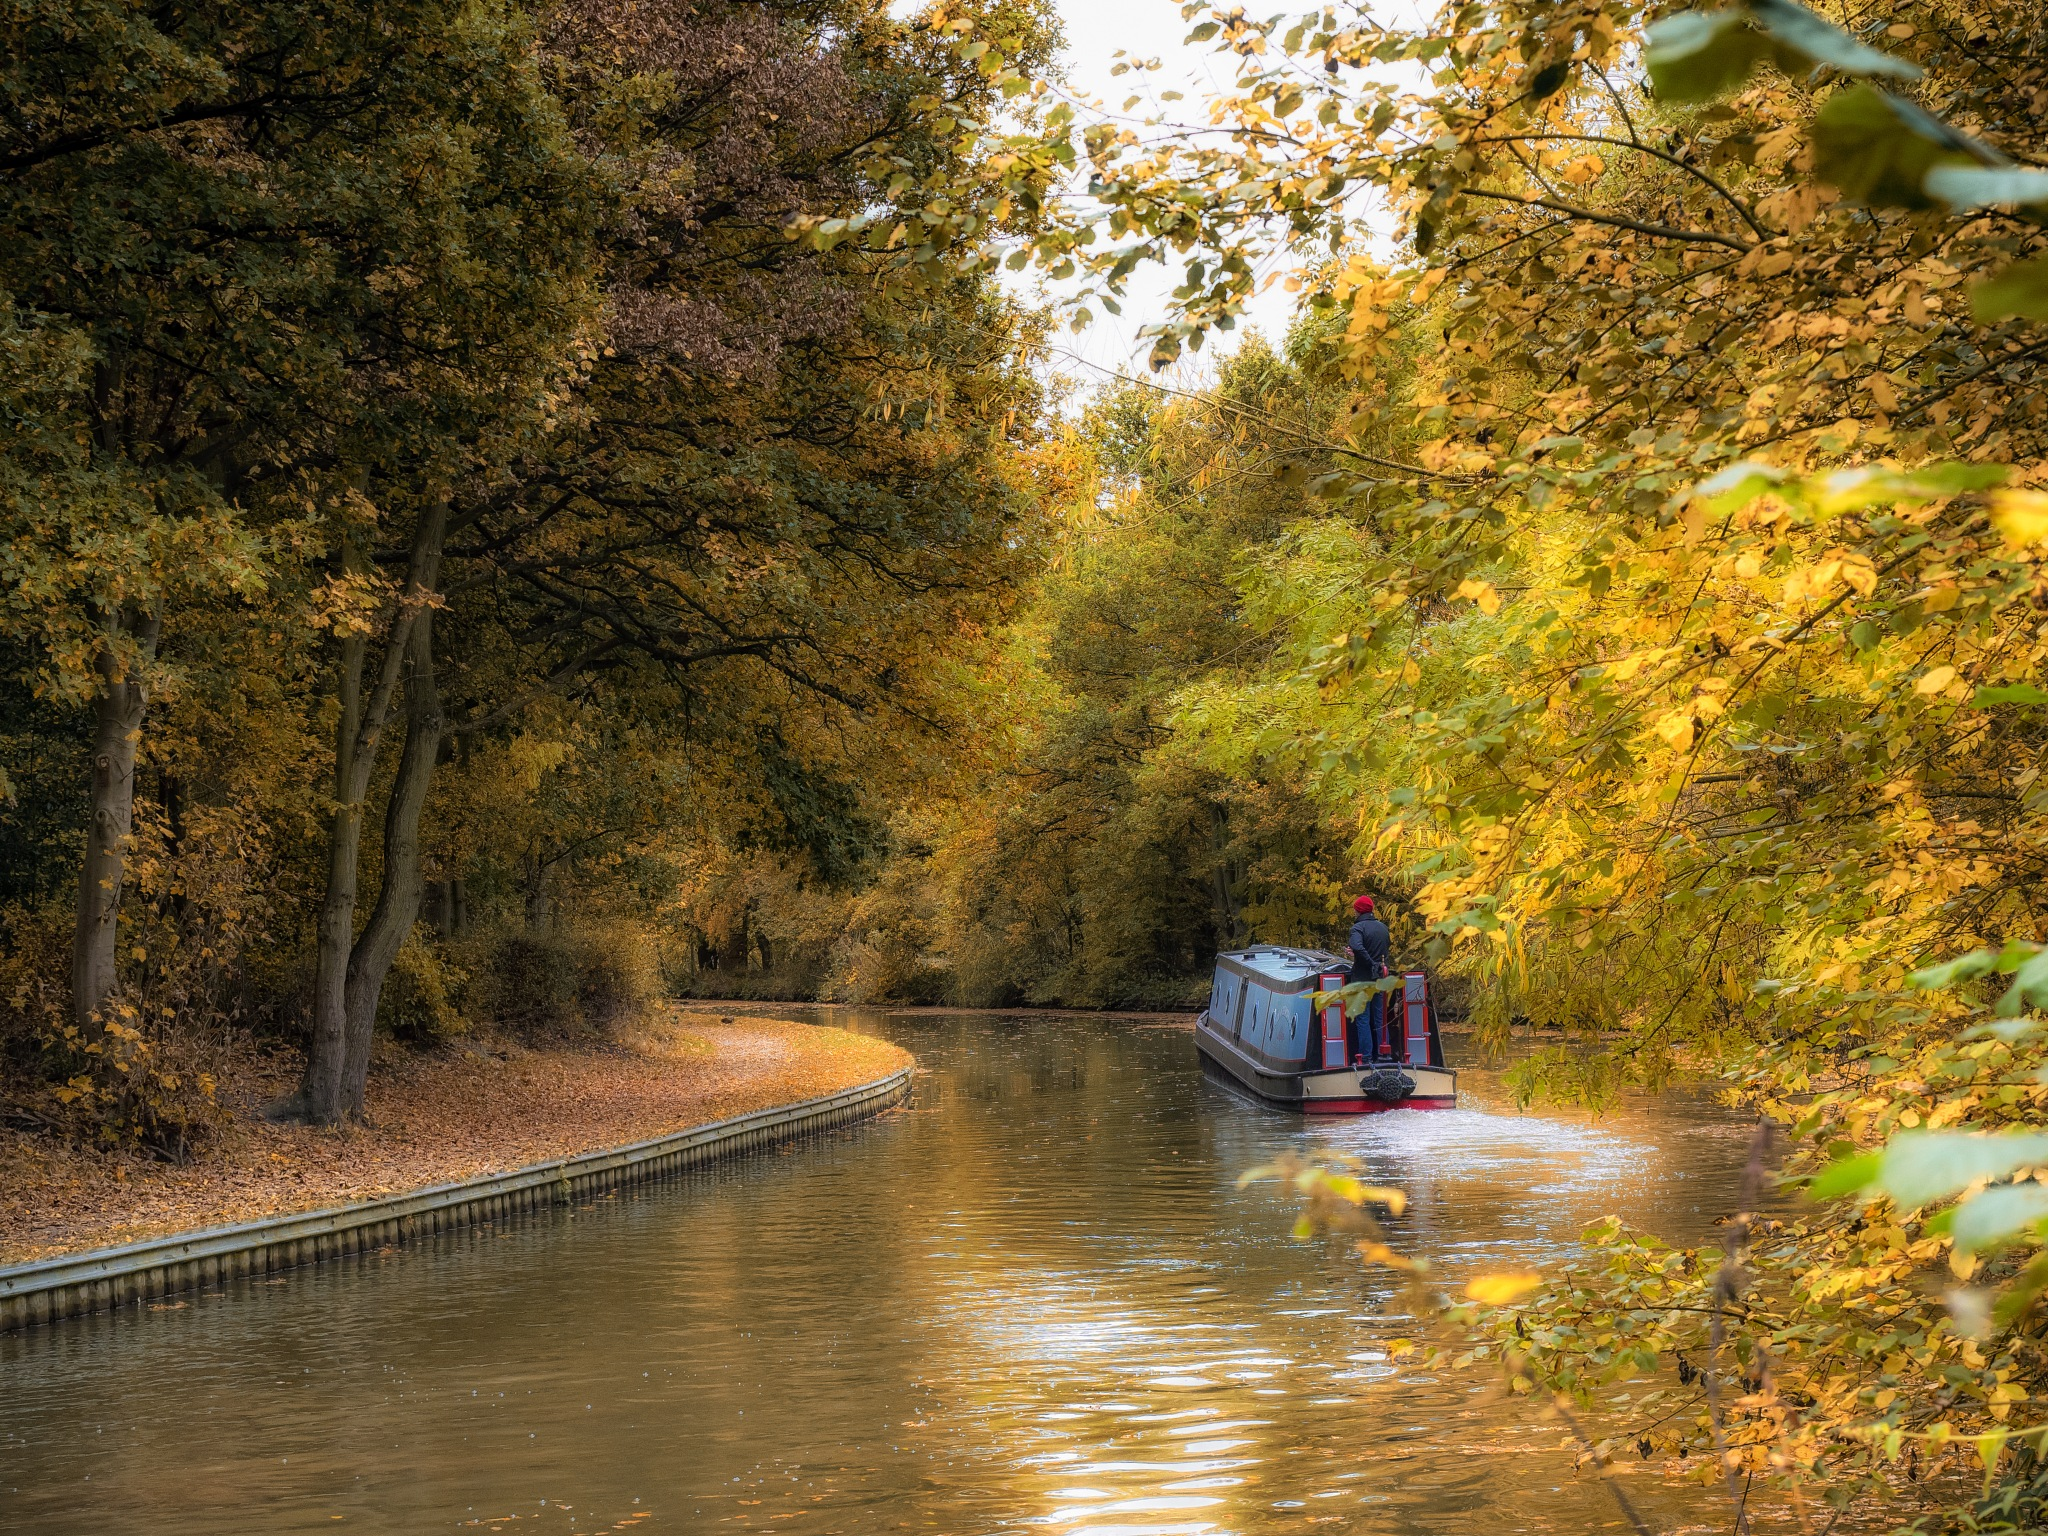 On the Canal by Sarah Walters